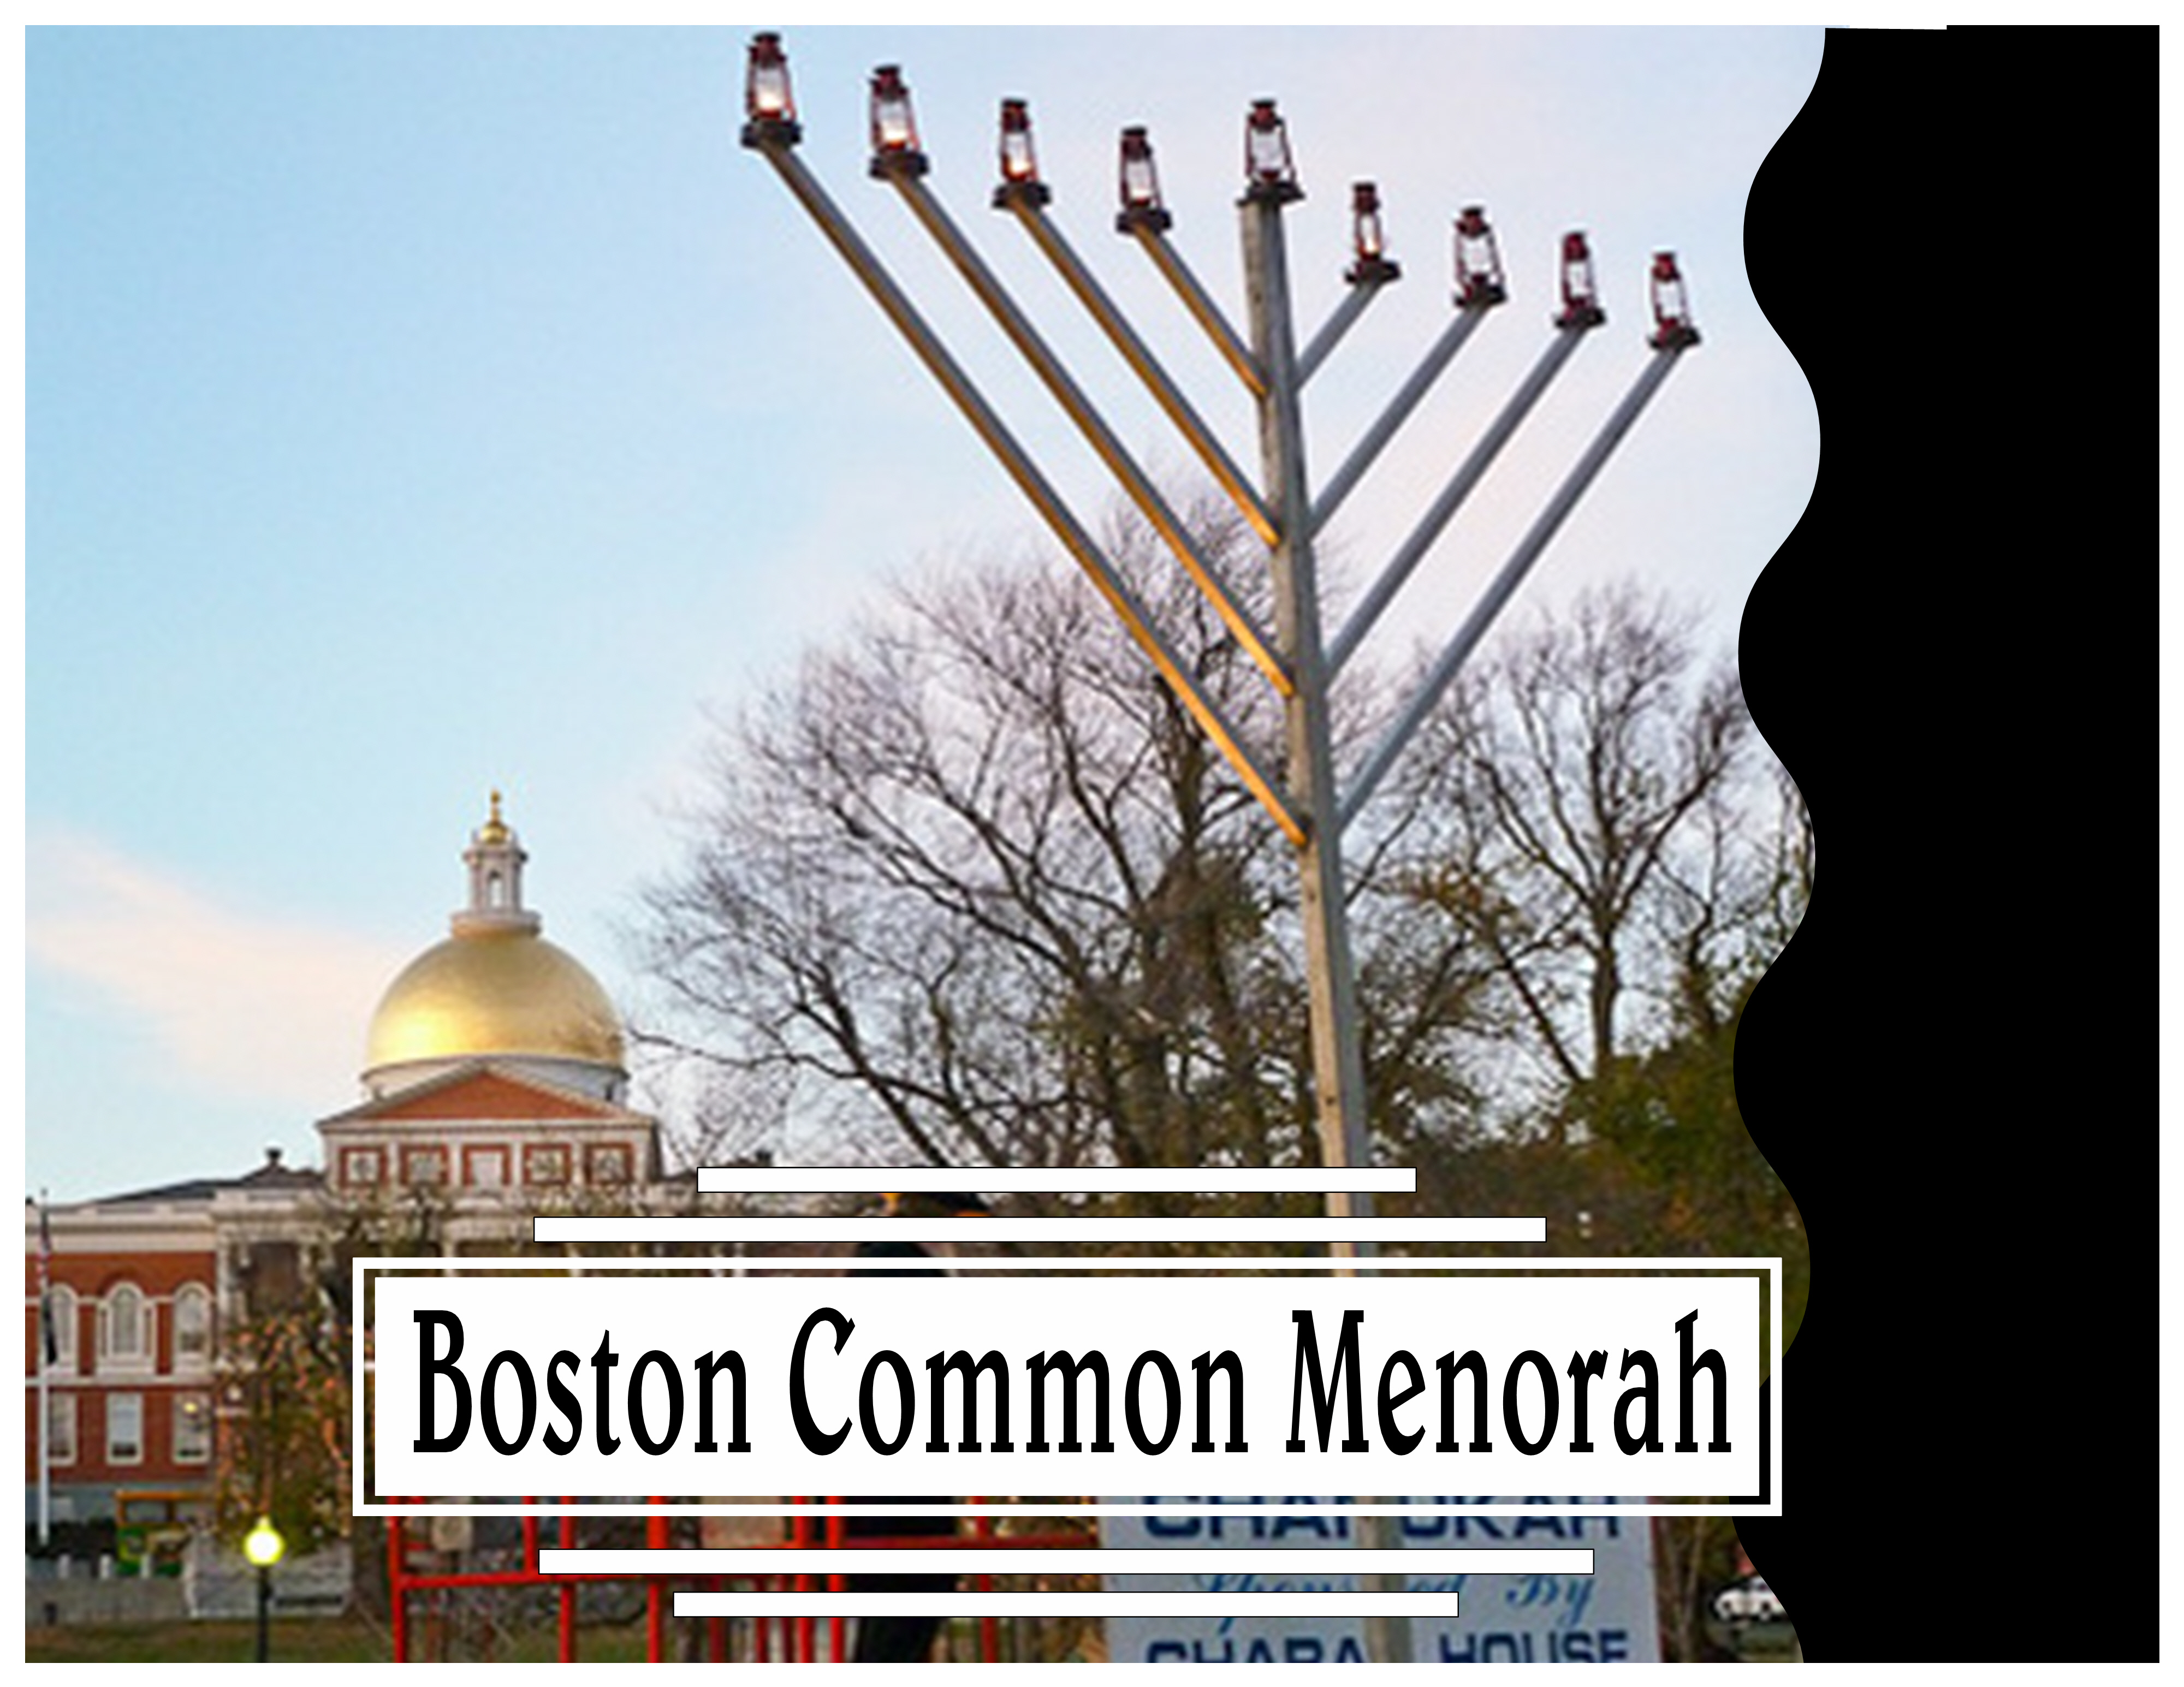 Boston_common_menorah